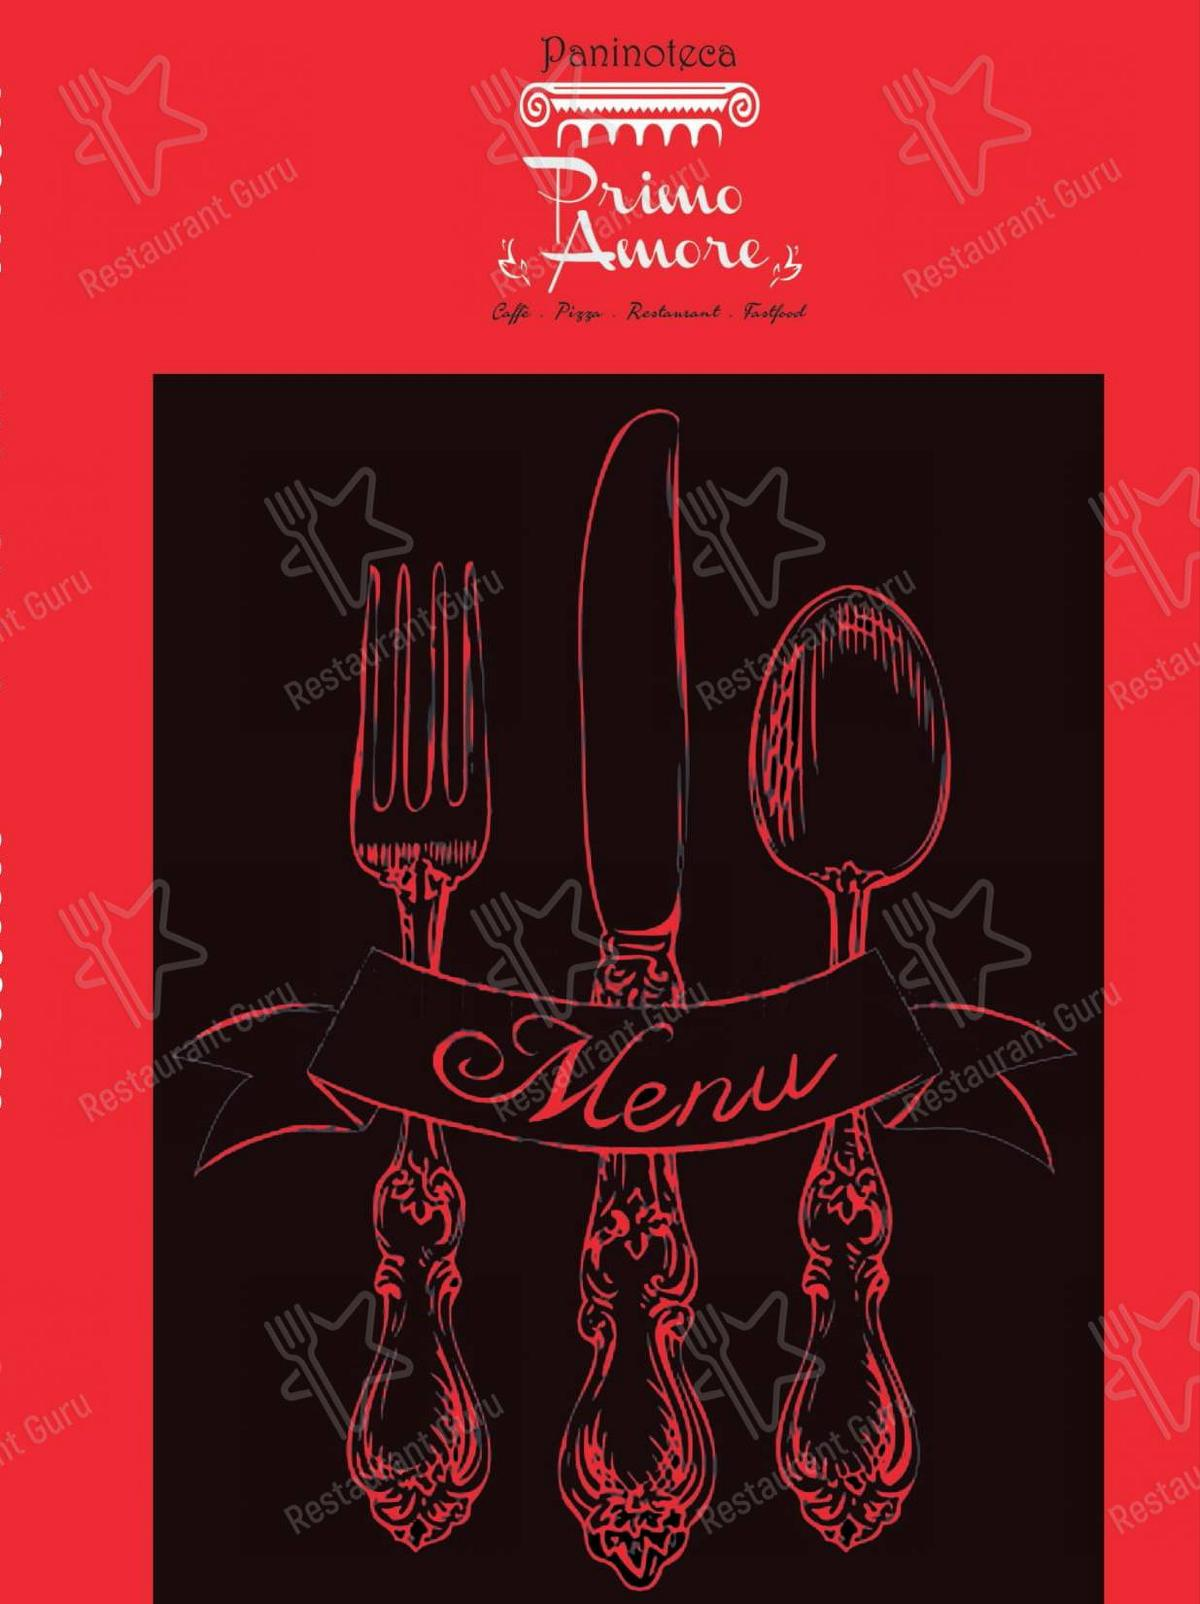 Primo Amore menu - dishes and beverages